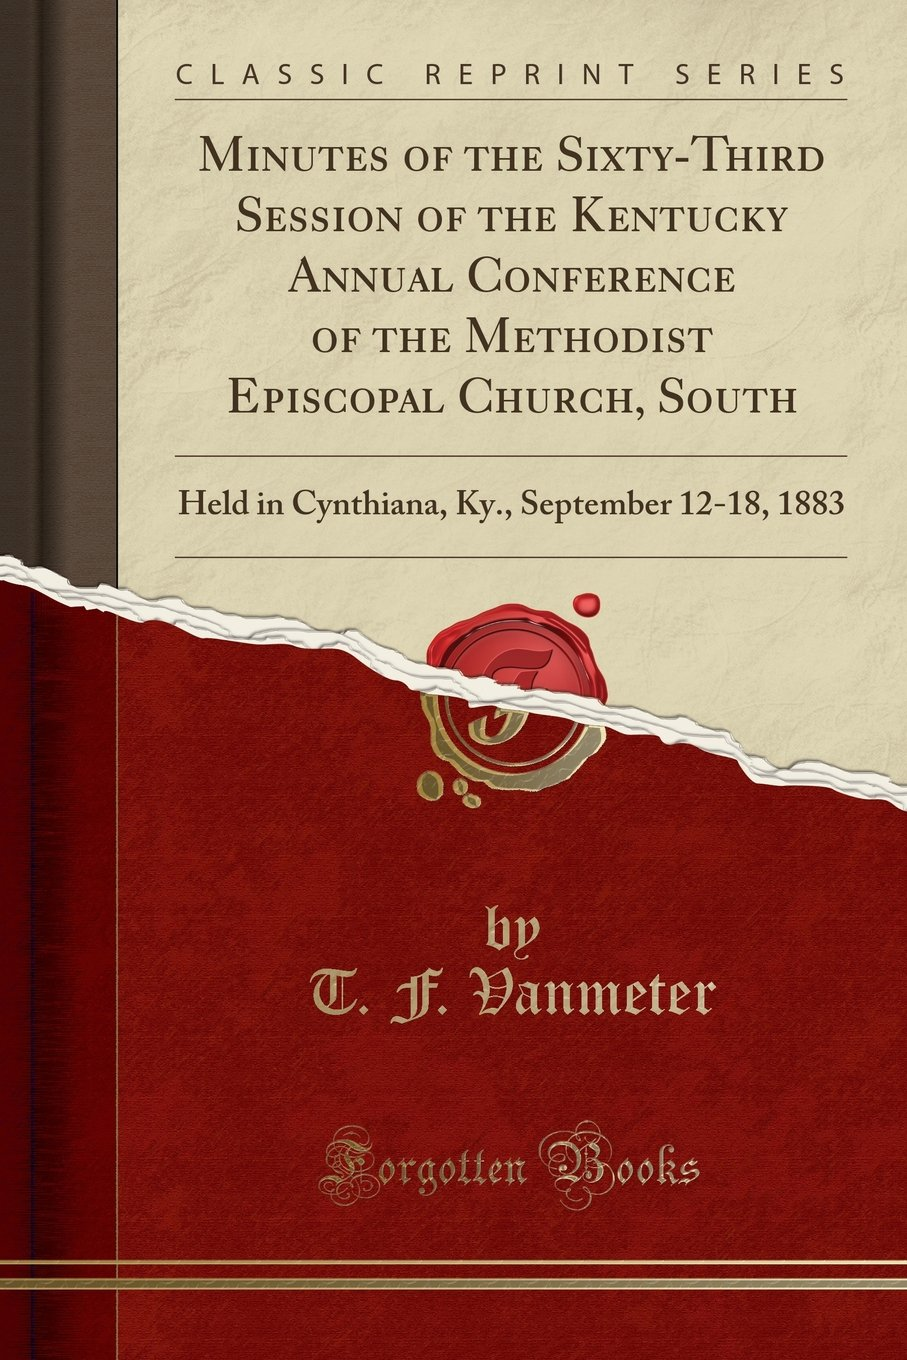 Download Minutes of the Sixty-Third Session of the Kentucky Annual Conference of the Methodist Episcopal Church, South: Held in Cynthiana, Ky., September 12-18, 1883 (Classic Reprint) pdf